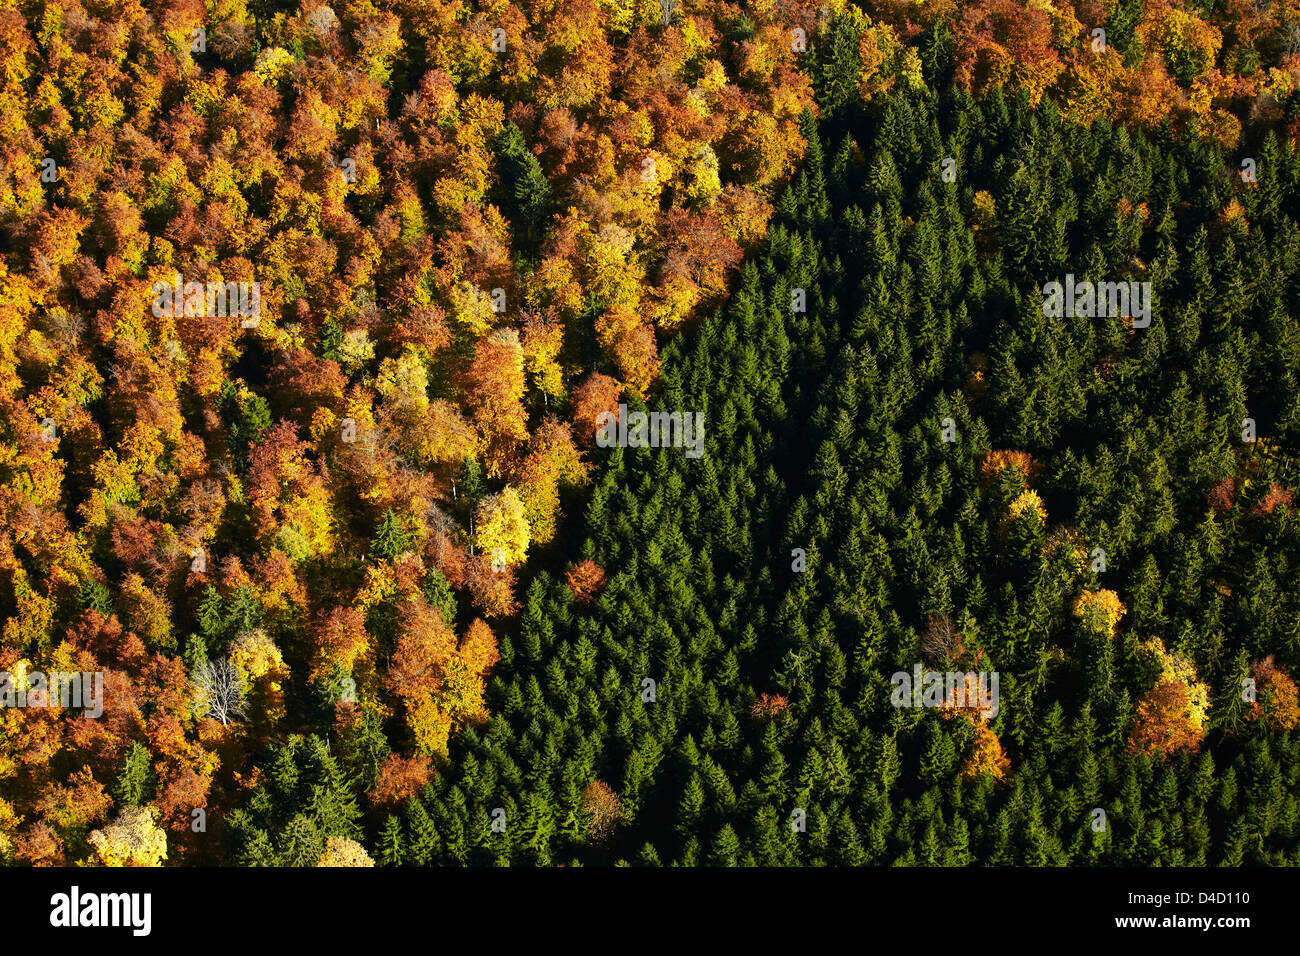 Autumnal broadleaf and conifer forest, aerial photo Stock Photo